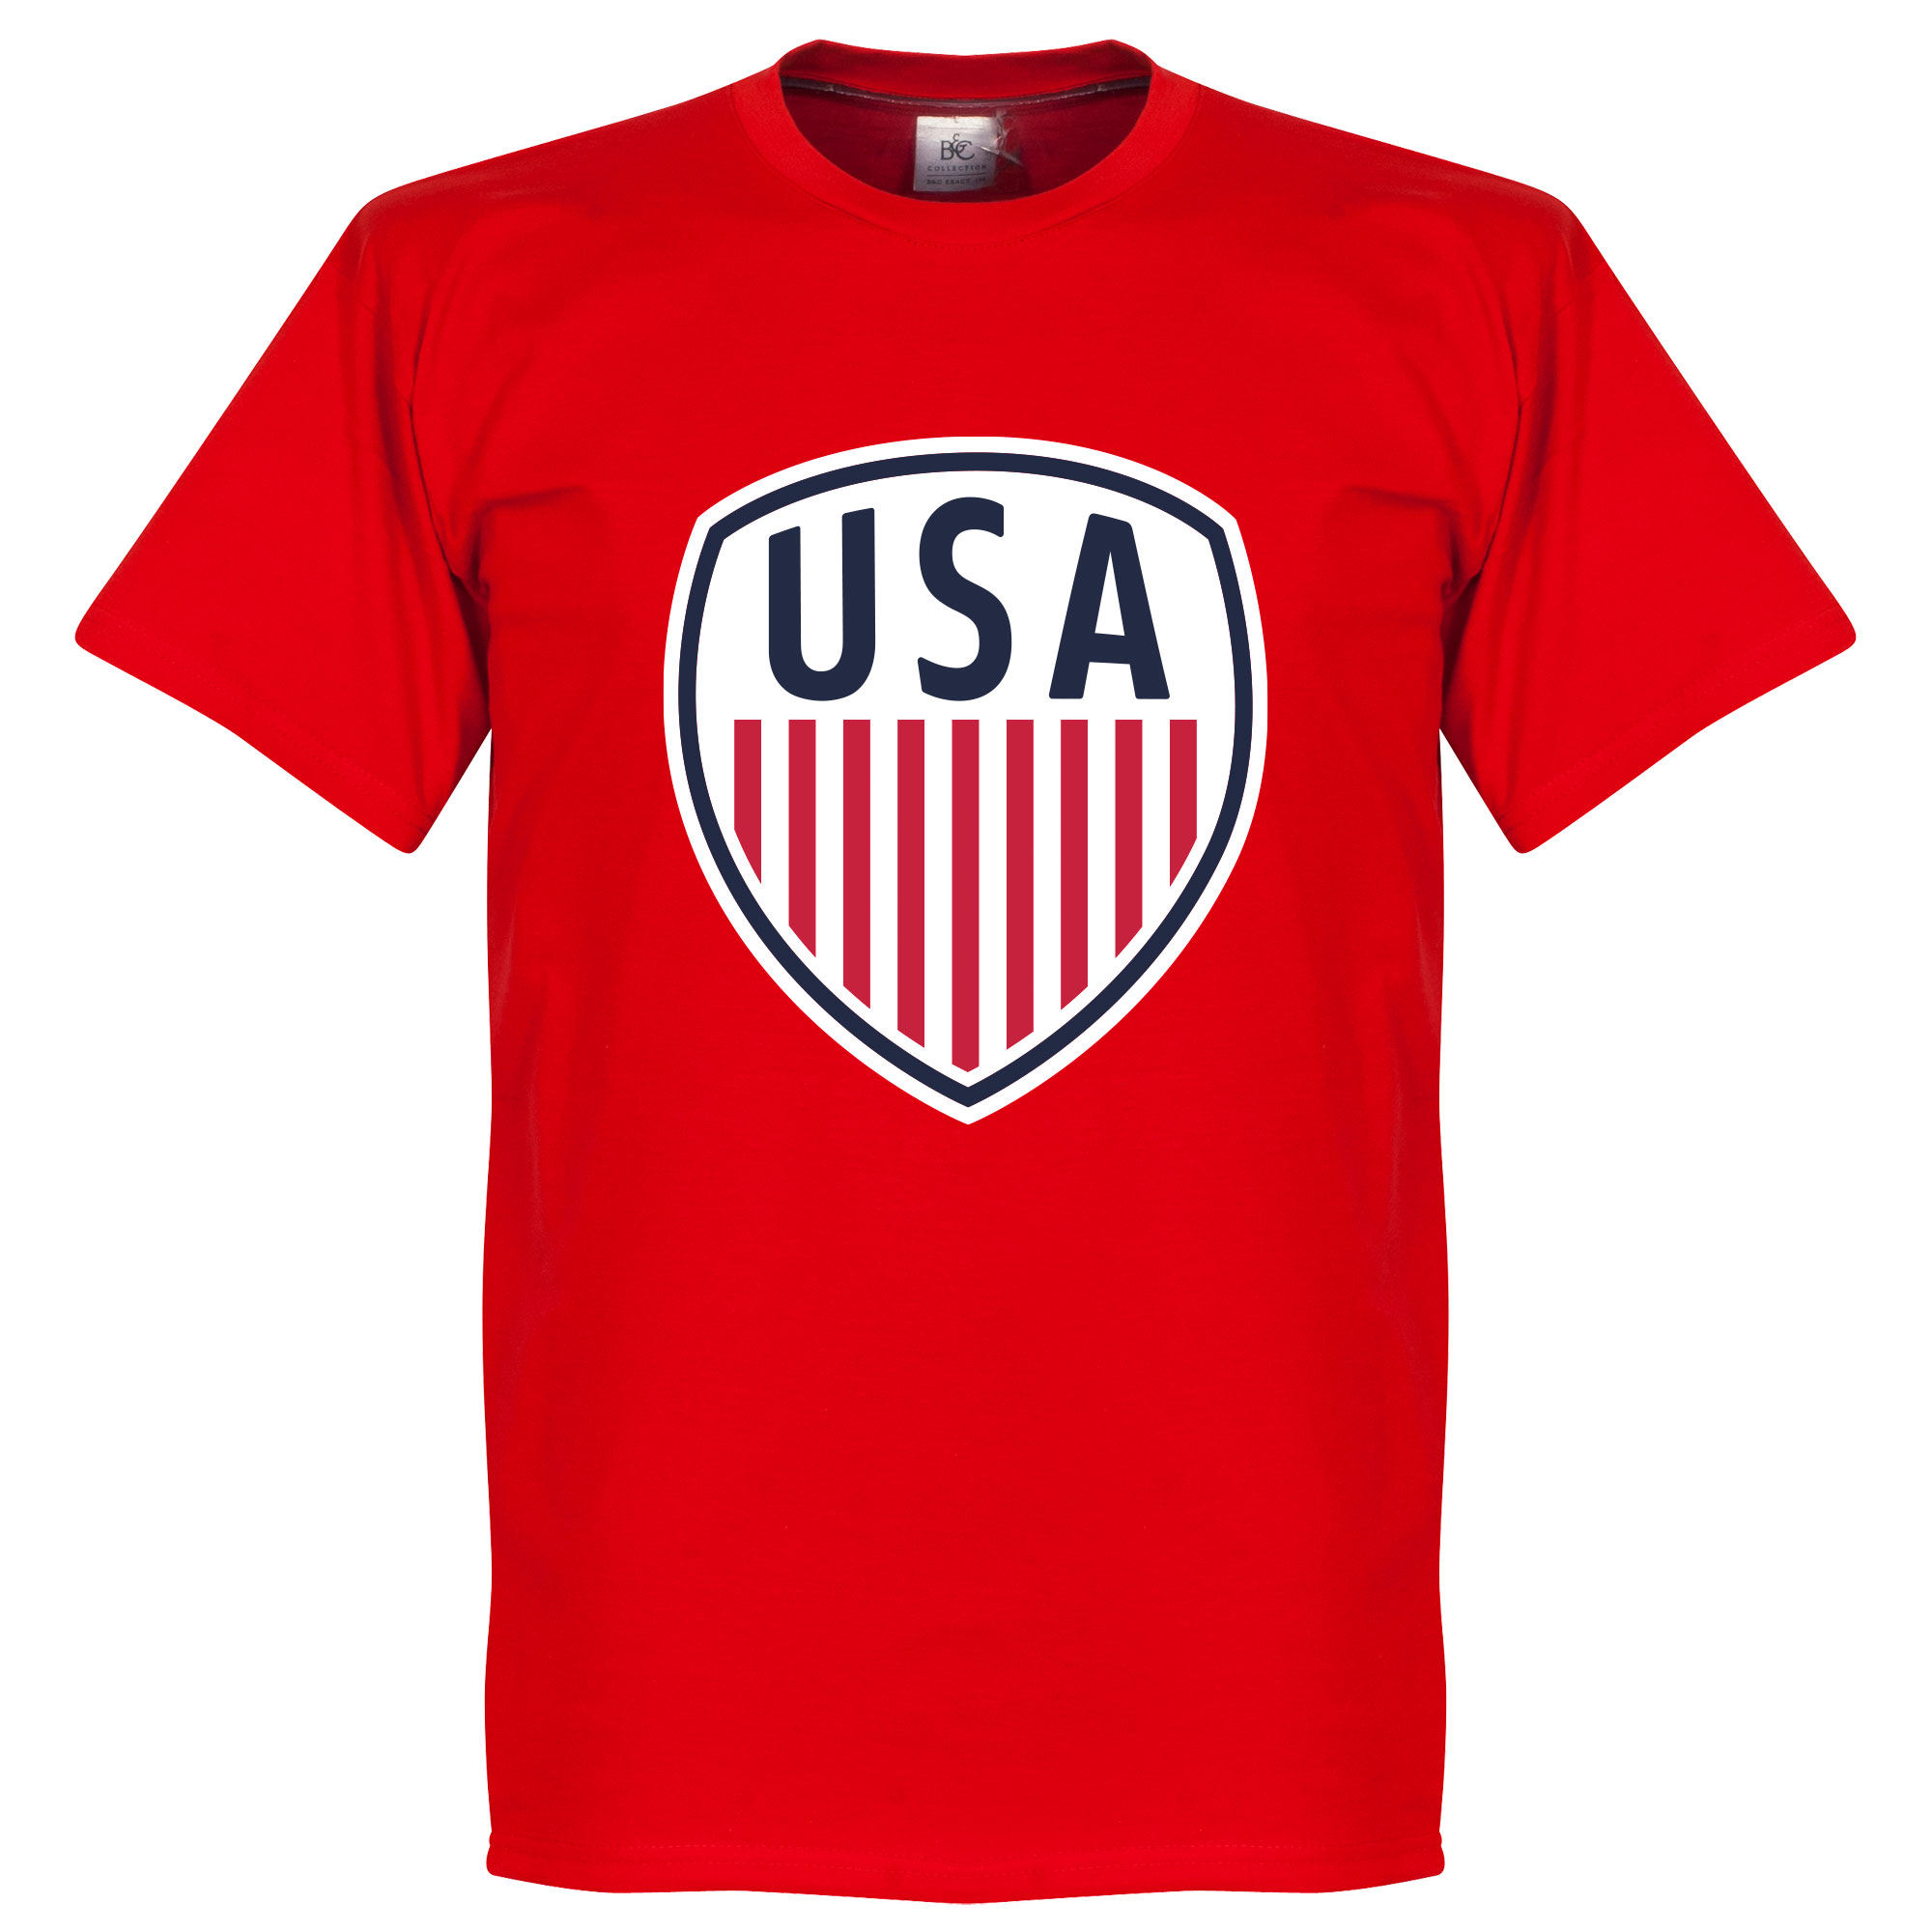 USA Crest Tee - Red - XS